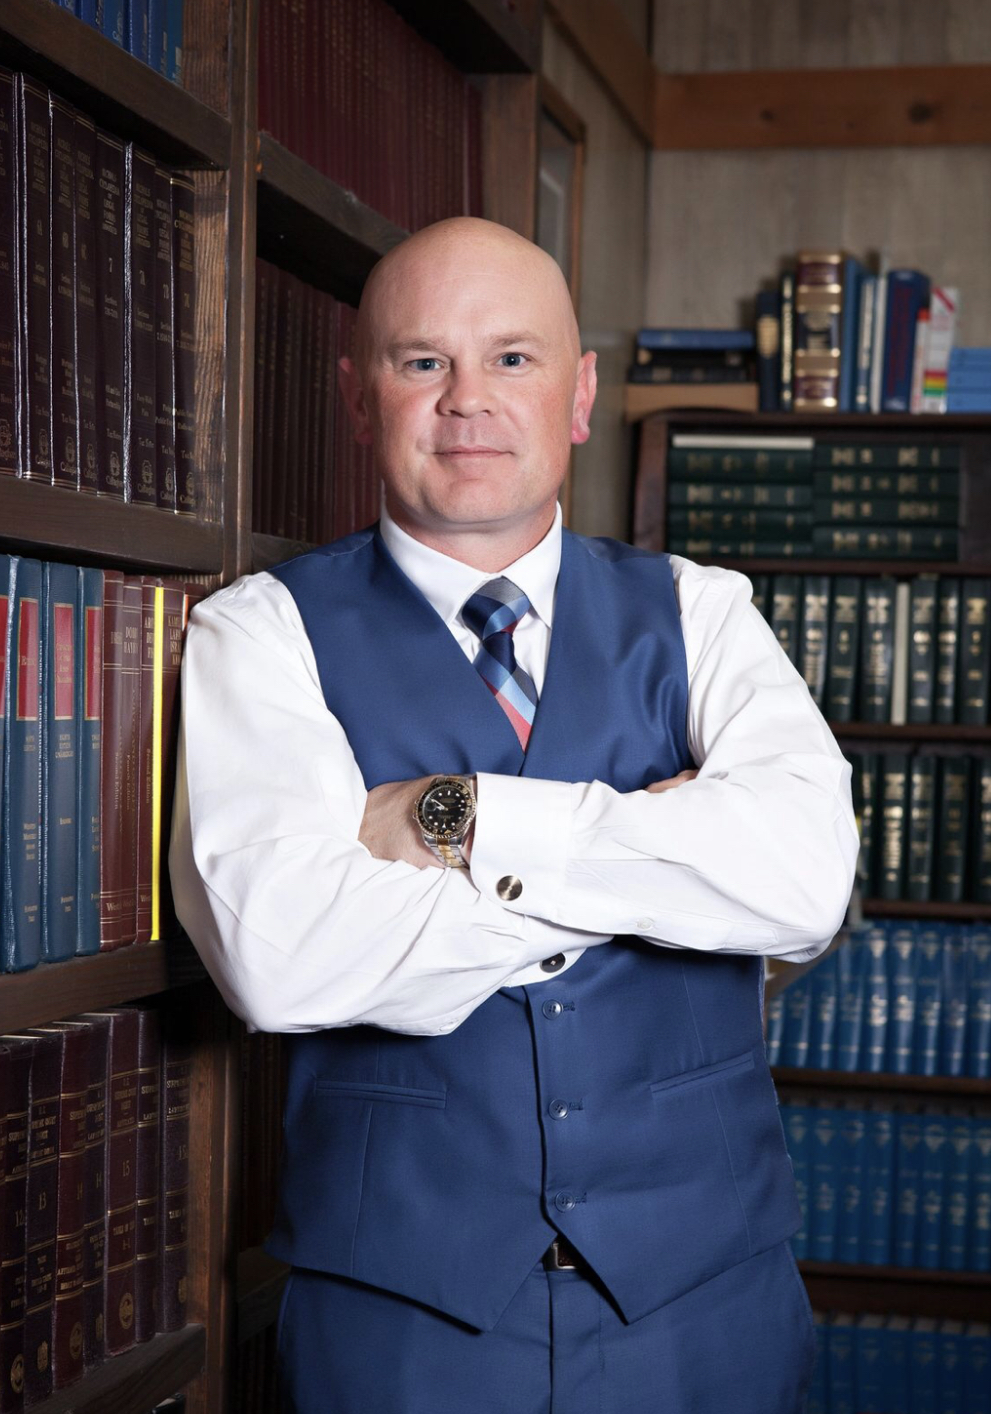 DUI Attorney Marcus Allen Lipham - Gibson County, TN - DUIAttorney.com